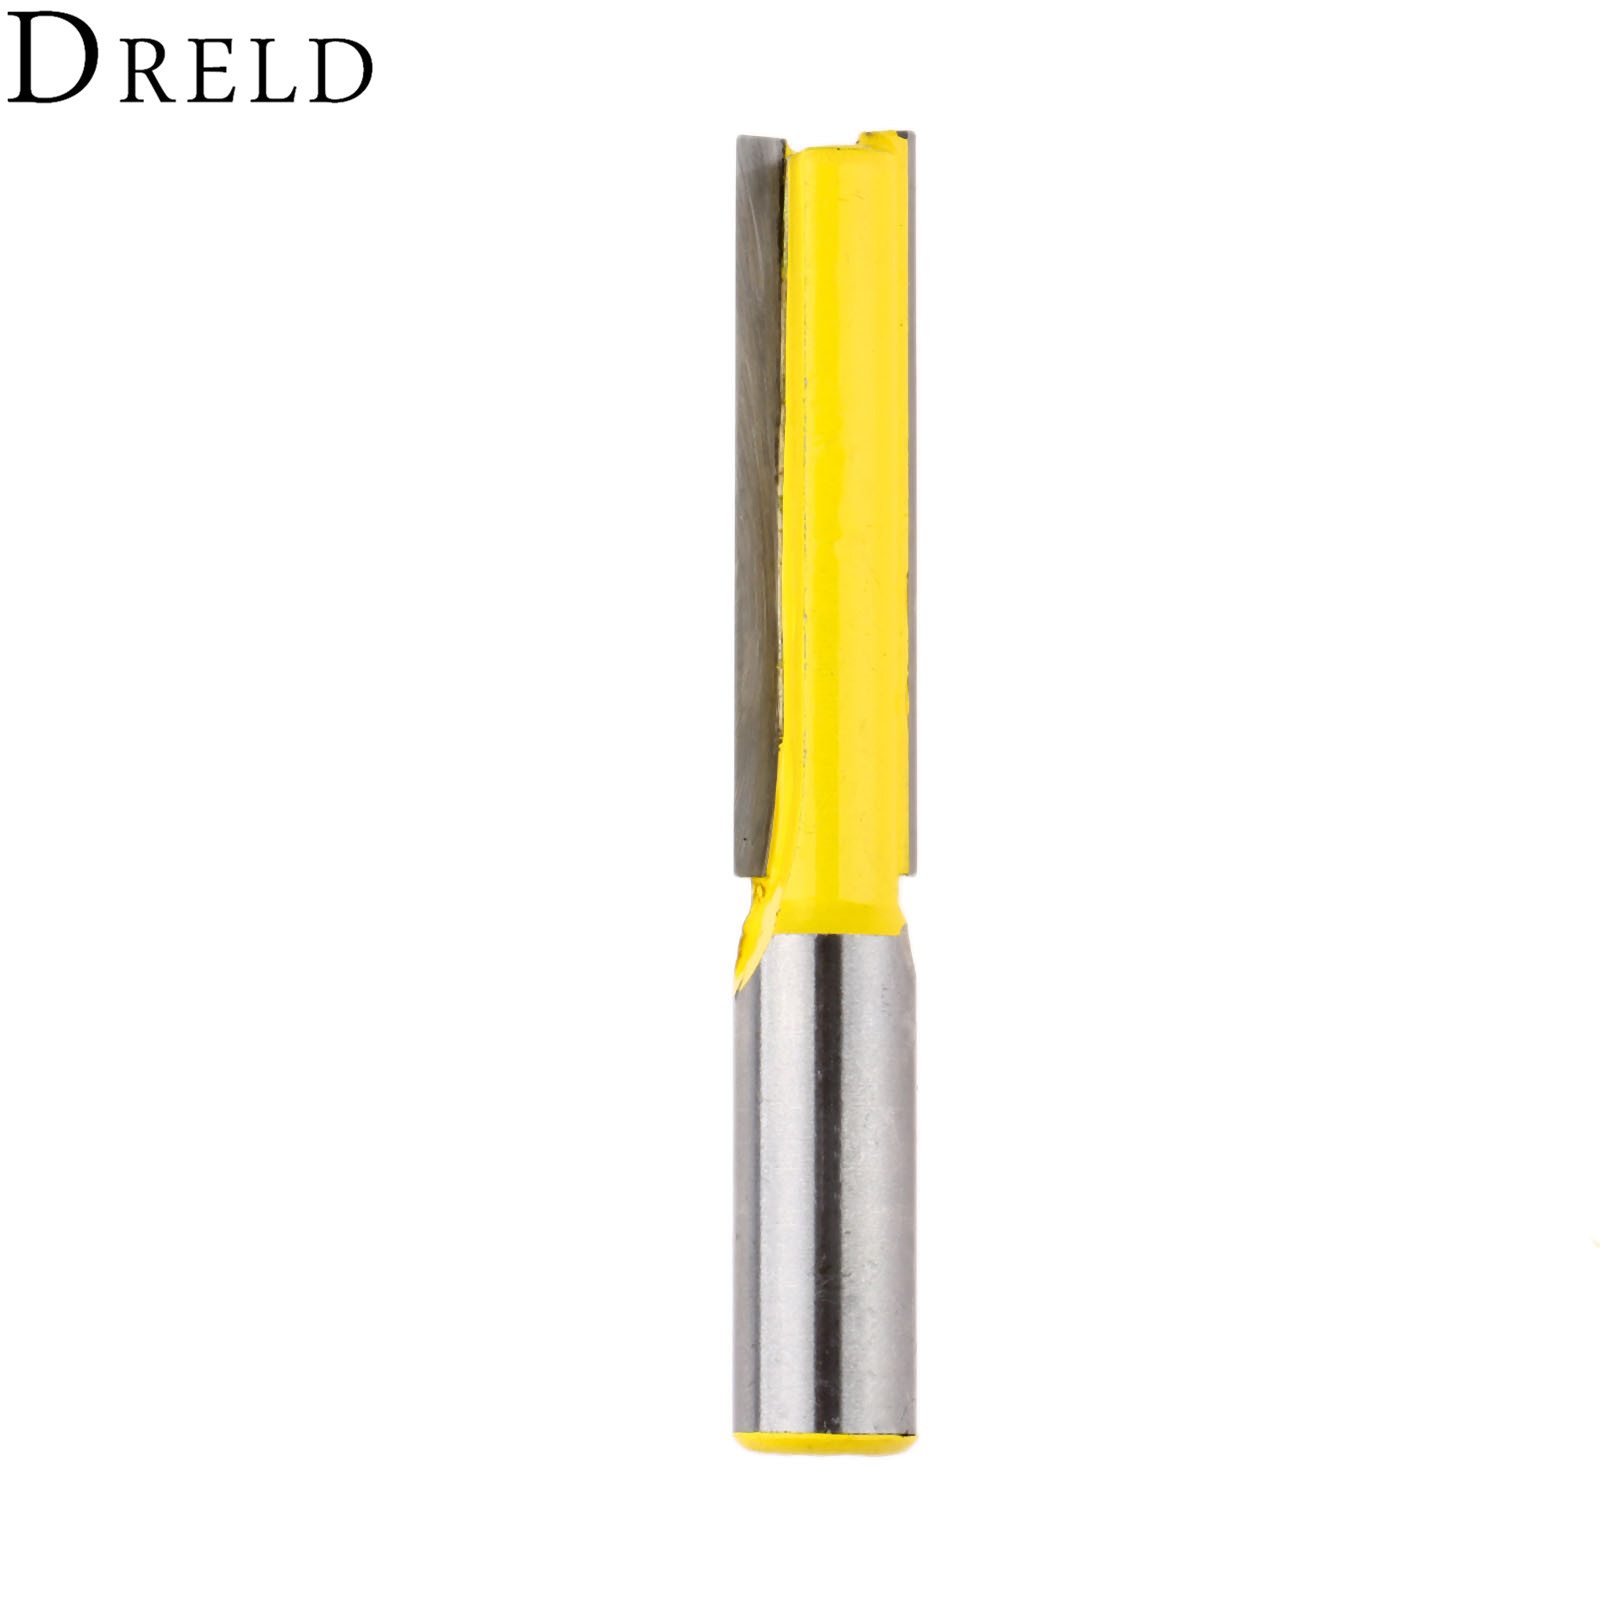 DRELD 1pc Wood Cutter 1/2 Shank Extra Long Straight Router Bit Milling Cutters Tools Woodworking Tenon Cutter 1/2